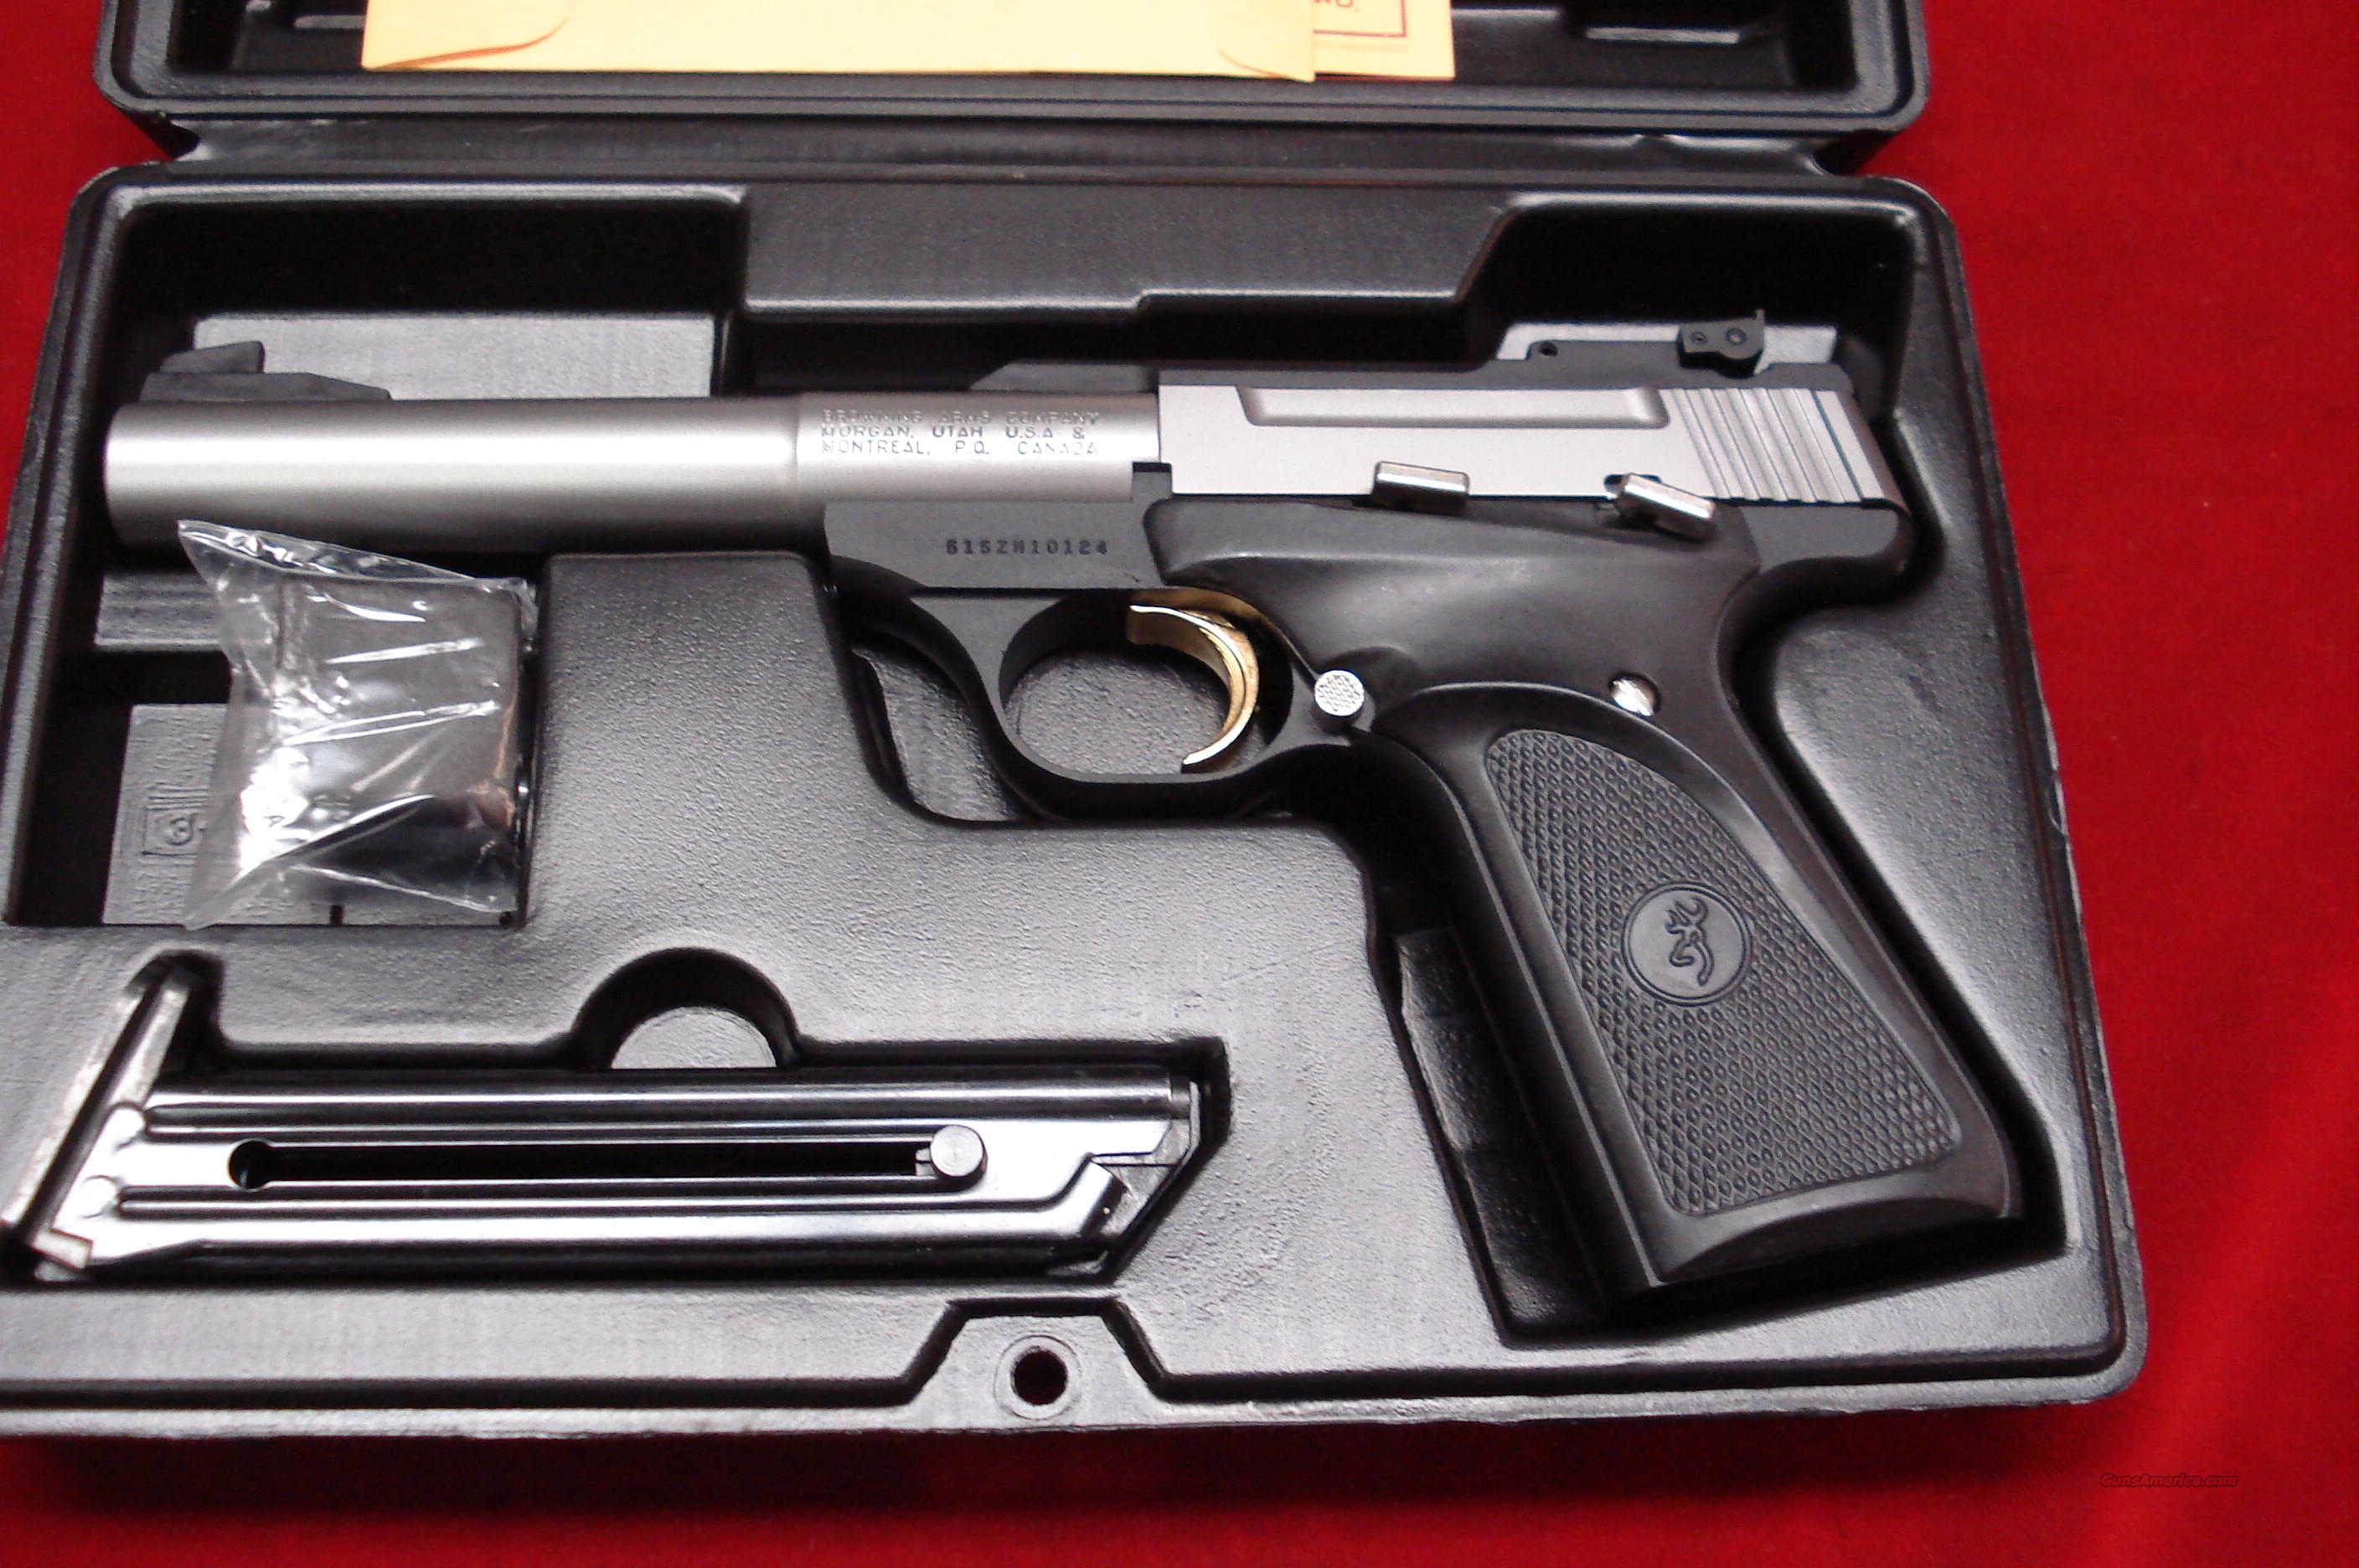 "BROWNING BUCKMARK STAINLESS  5.5"" CAMPER  PRO TARGET  22CAL. NEW  Guns > Pistols > Browning Pistols > Buckmark"